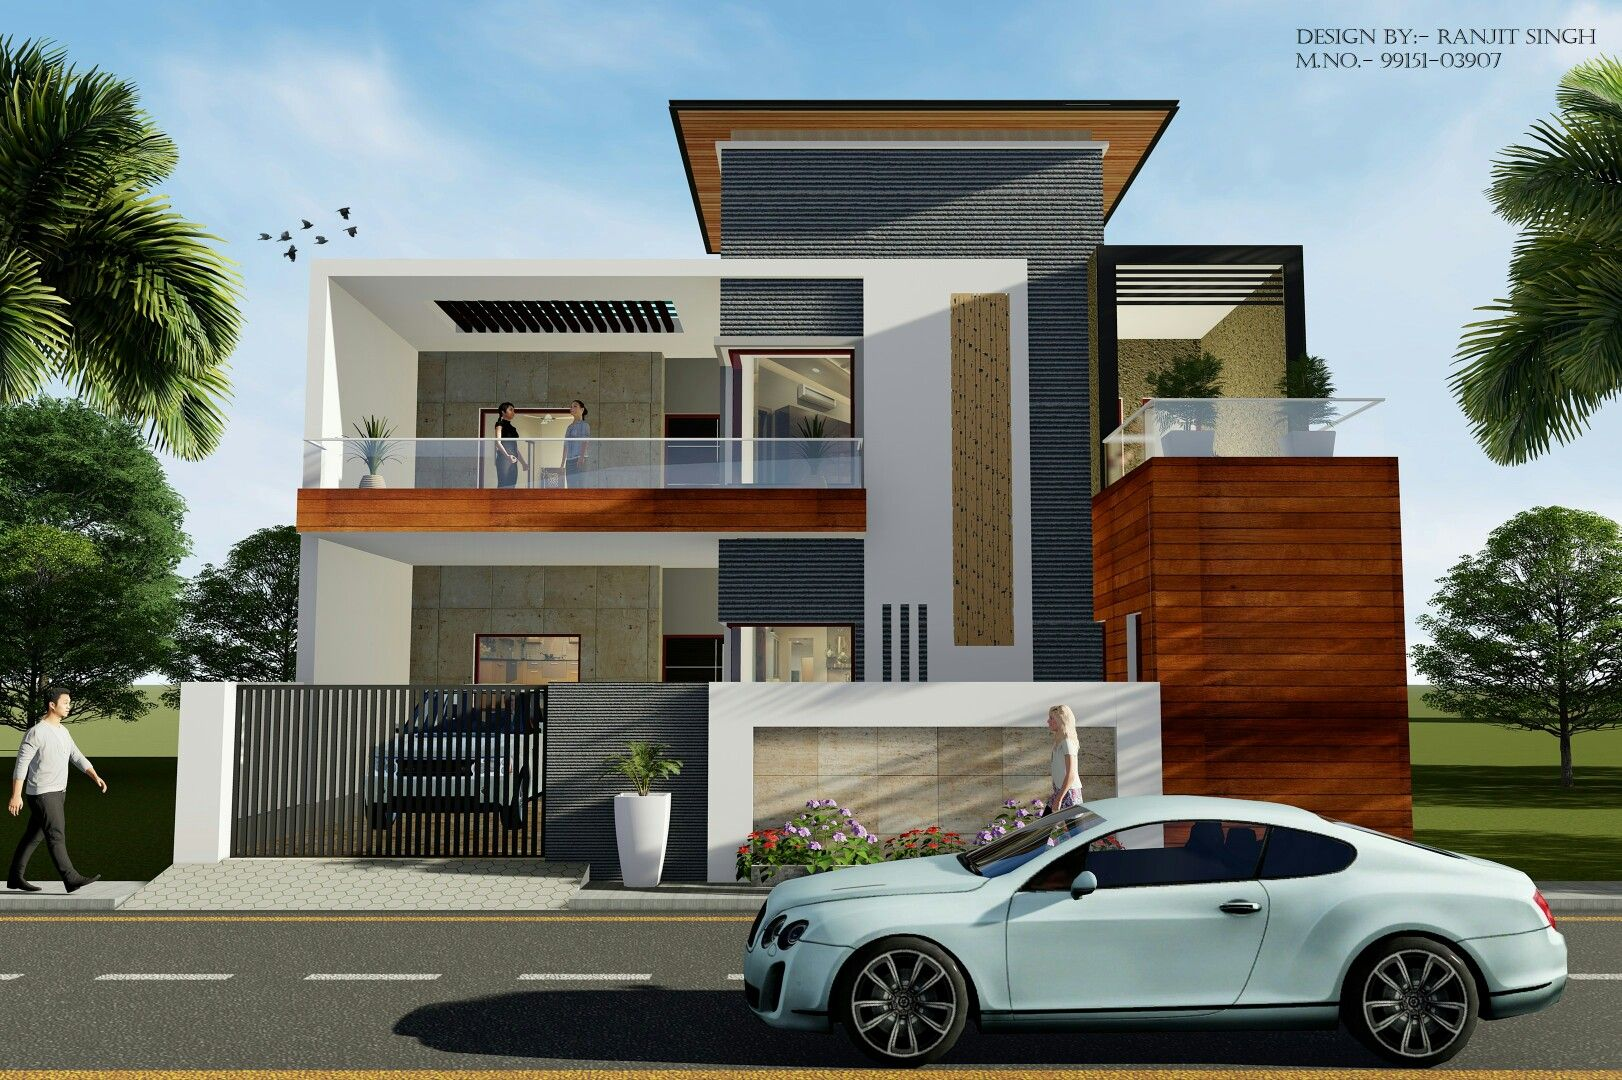 35 Feet Front View House Designs Exterior Architecture House House Front Design